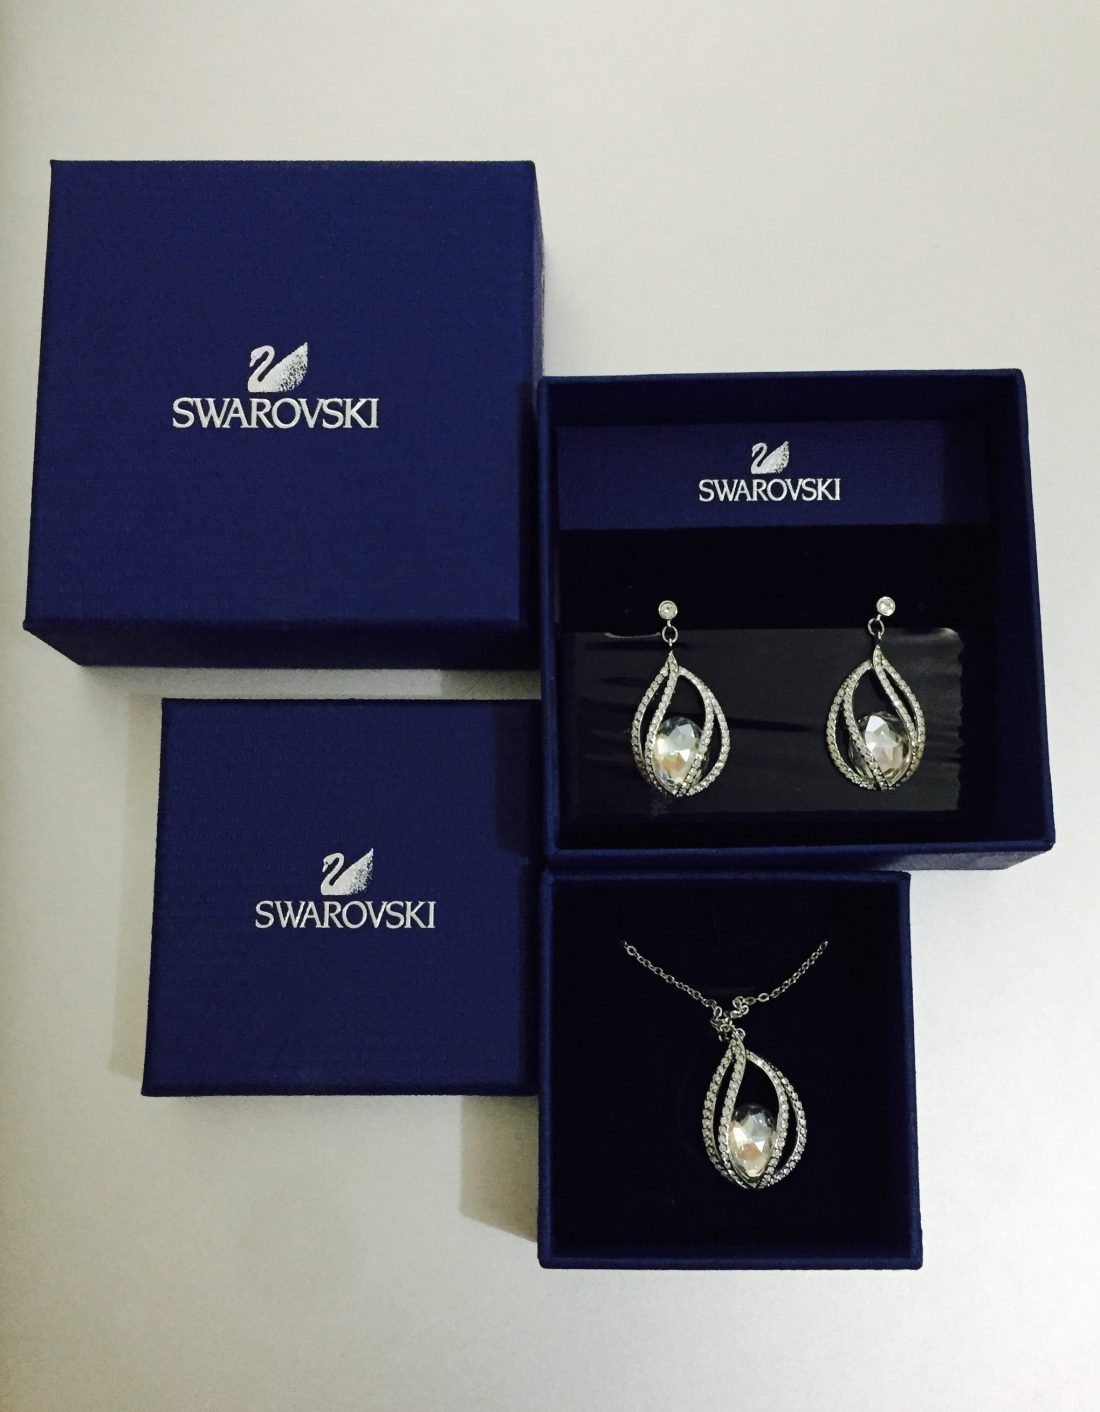 The Swarovski Set